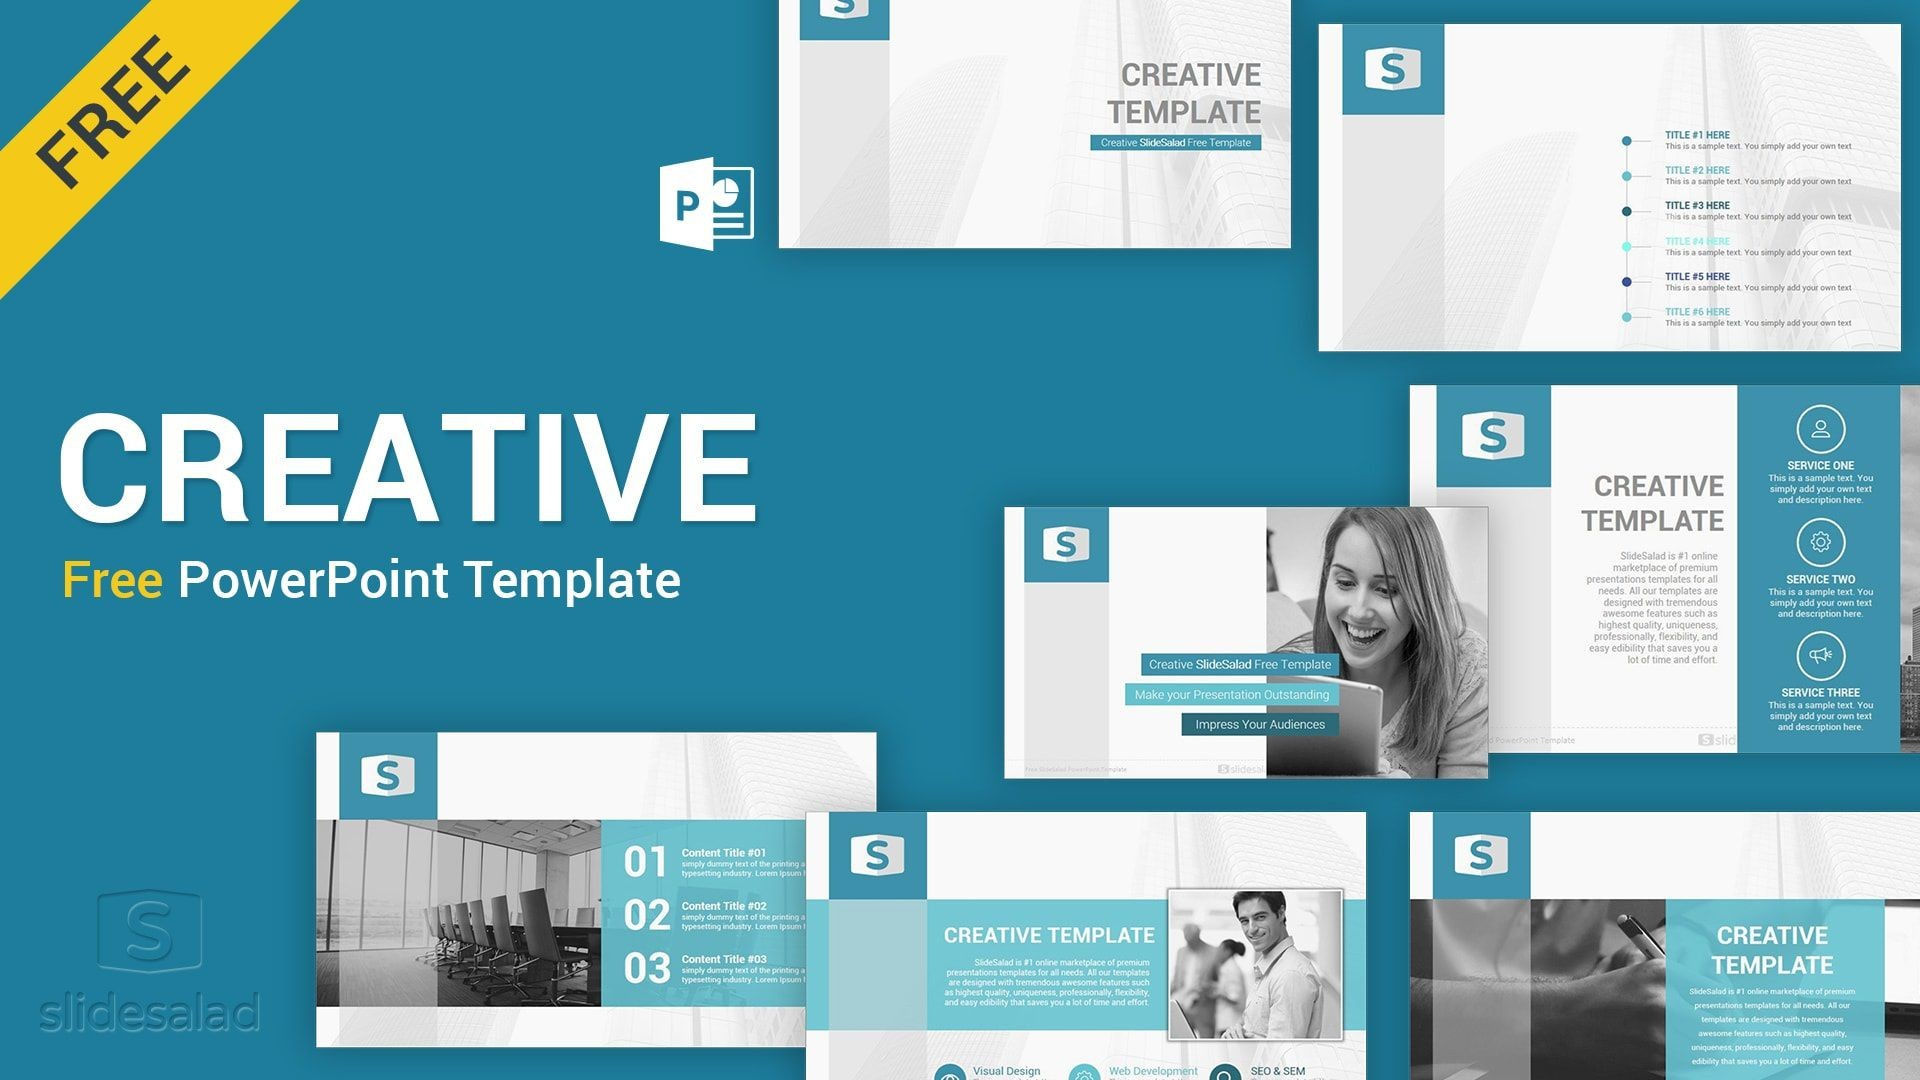 005 Simple Free Download Powerpoint Template High Definition  Templates Medical Theme Presentation 20181920